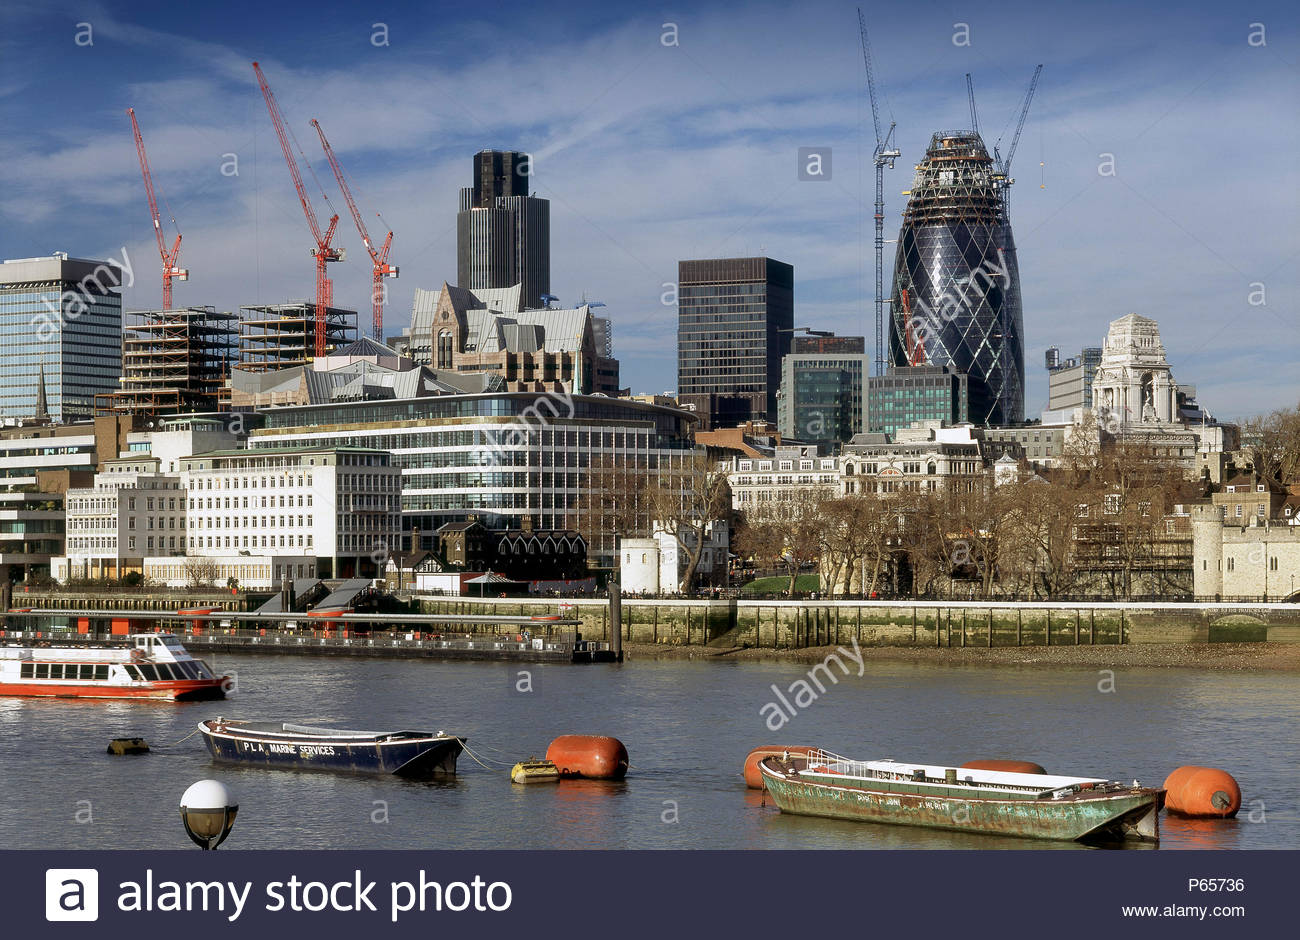 The Gherkin Swiss-Re building in construction alongside the River Thames. Norman Foster and Partners Architects - Stock Image